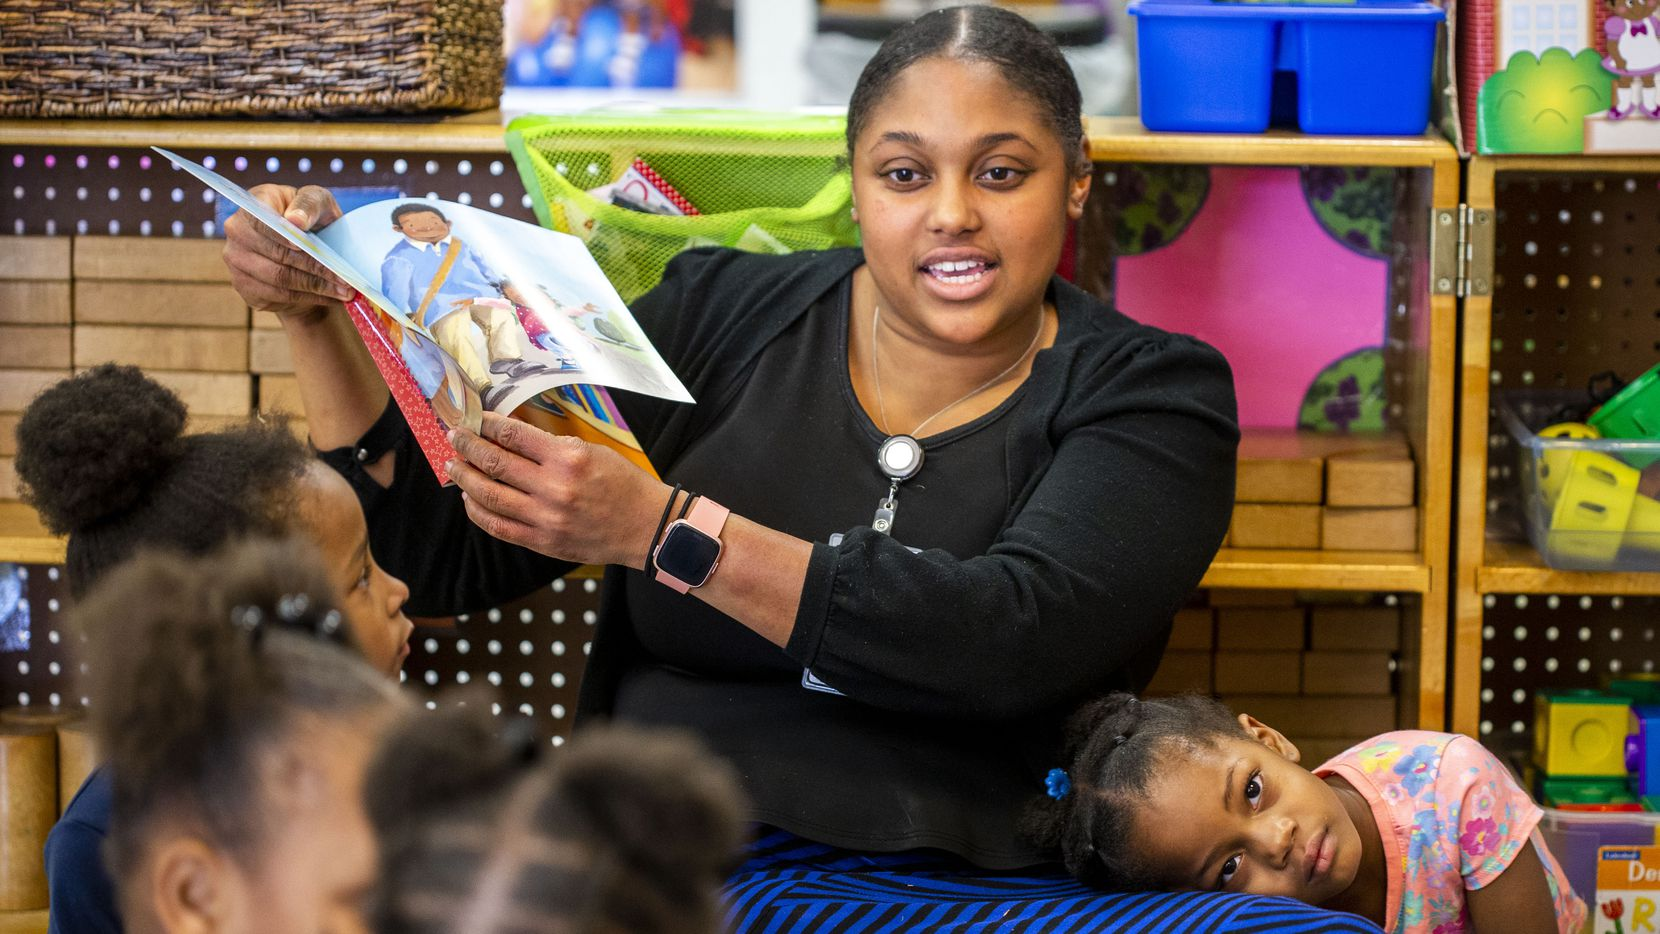 Erika Littlejohn, 3, leans on Natasha Hymes as she reads a book to the class at ChildCareGroup Martin Luther King, Jr Center on Monday.